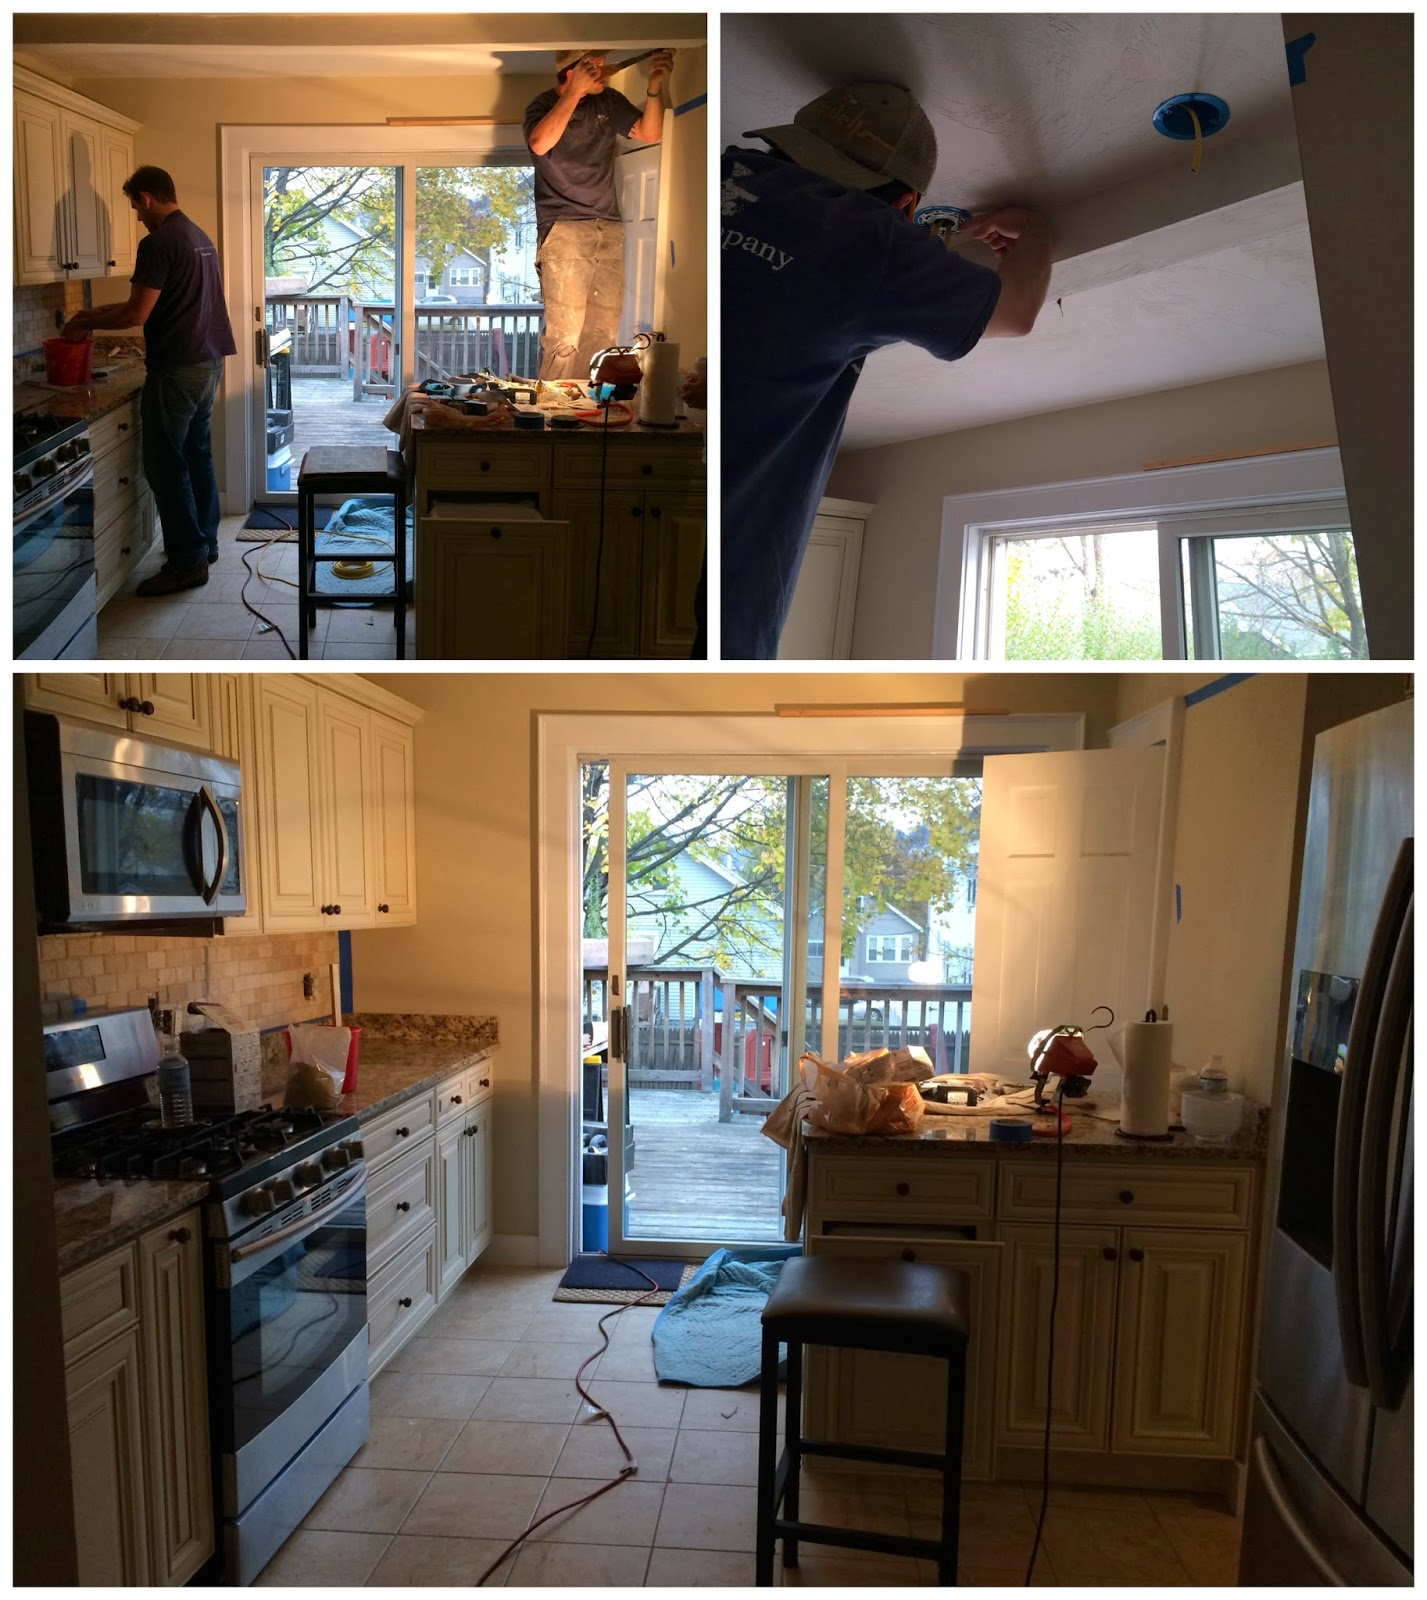 New Kitchen Before And After: A New Nill: Before And After: Kitchen Updates